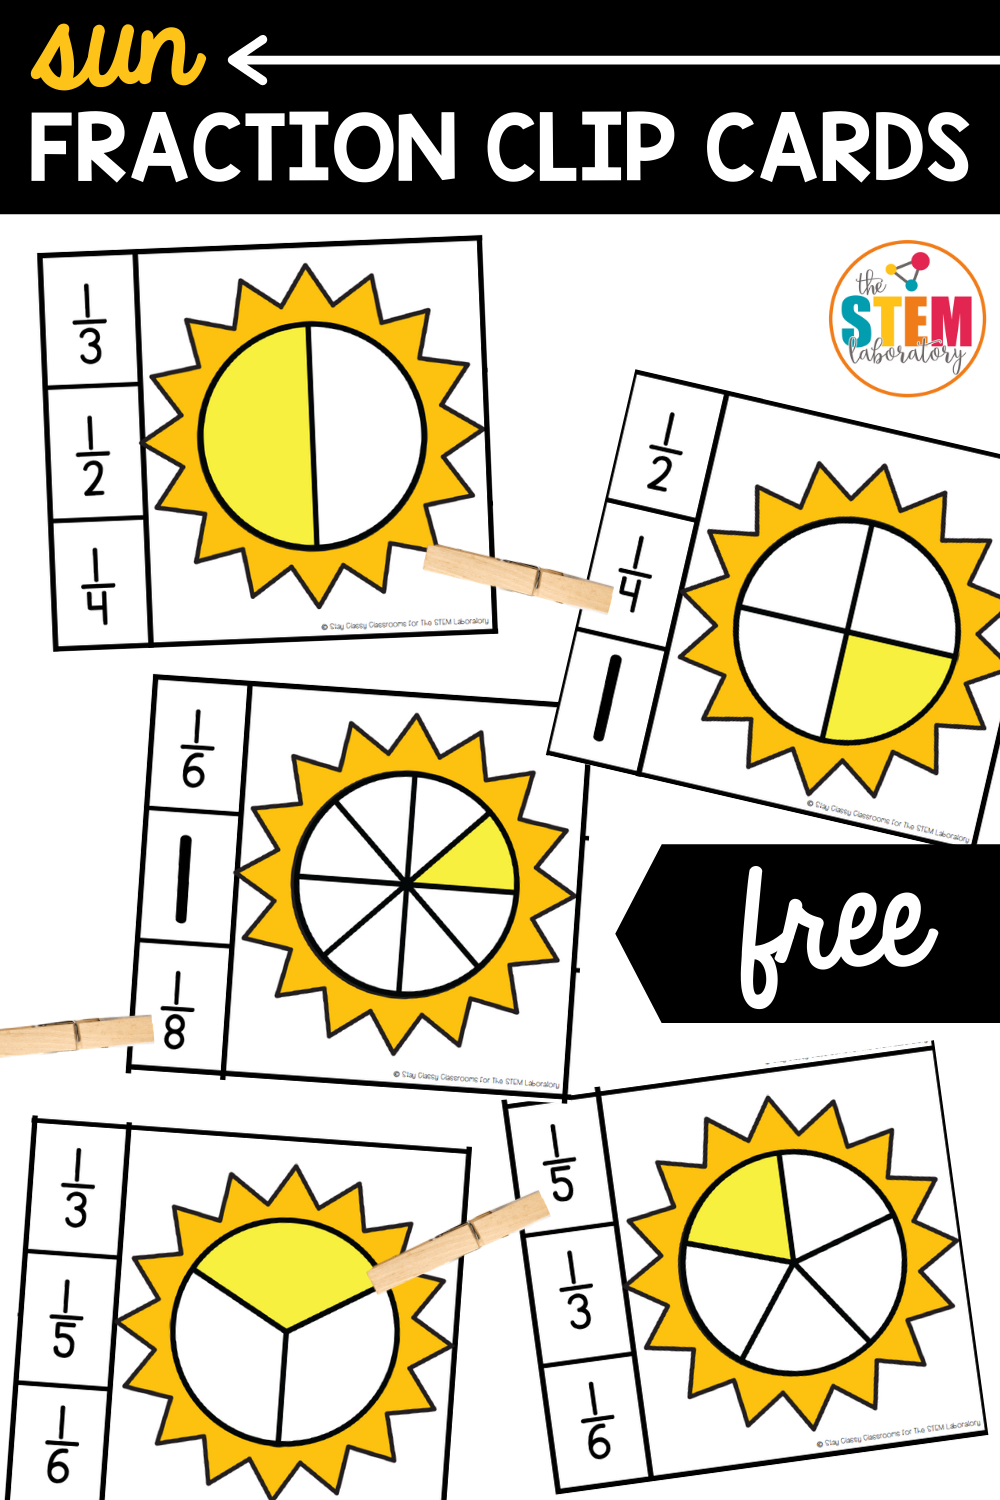 Sun Fraction Clip Cards